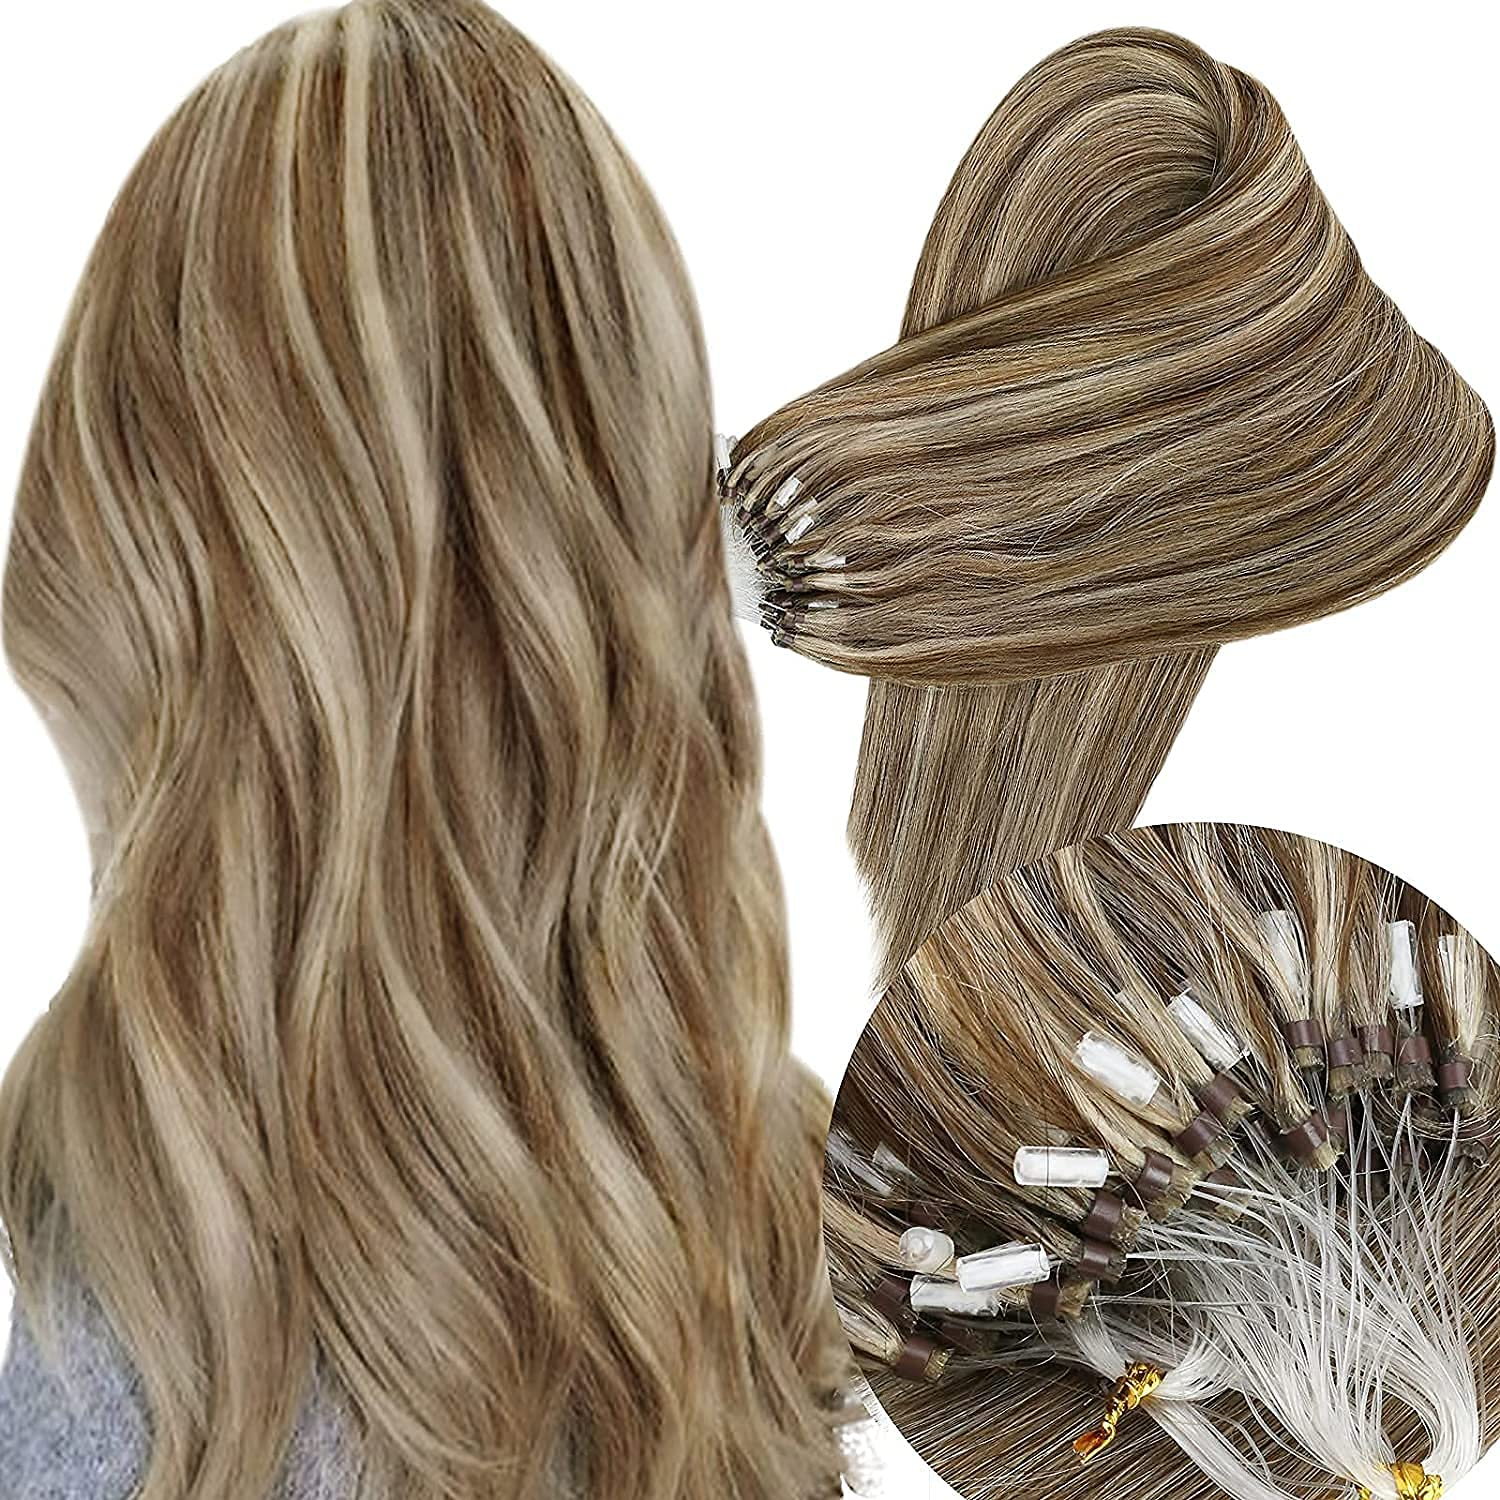 Ranking Special Campaign TOP4 Sunny 24inch Micro Loop Hair Blonde Color Extensions Human